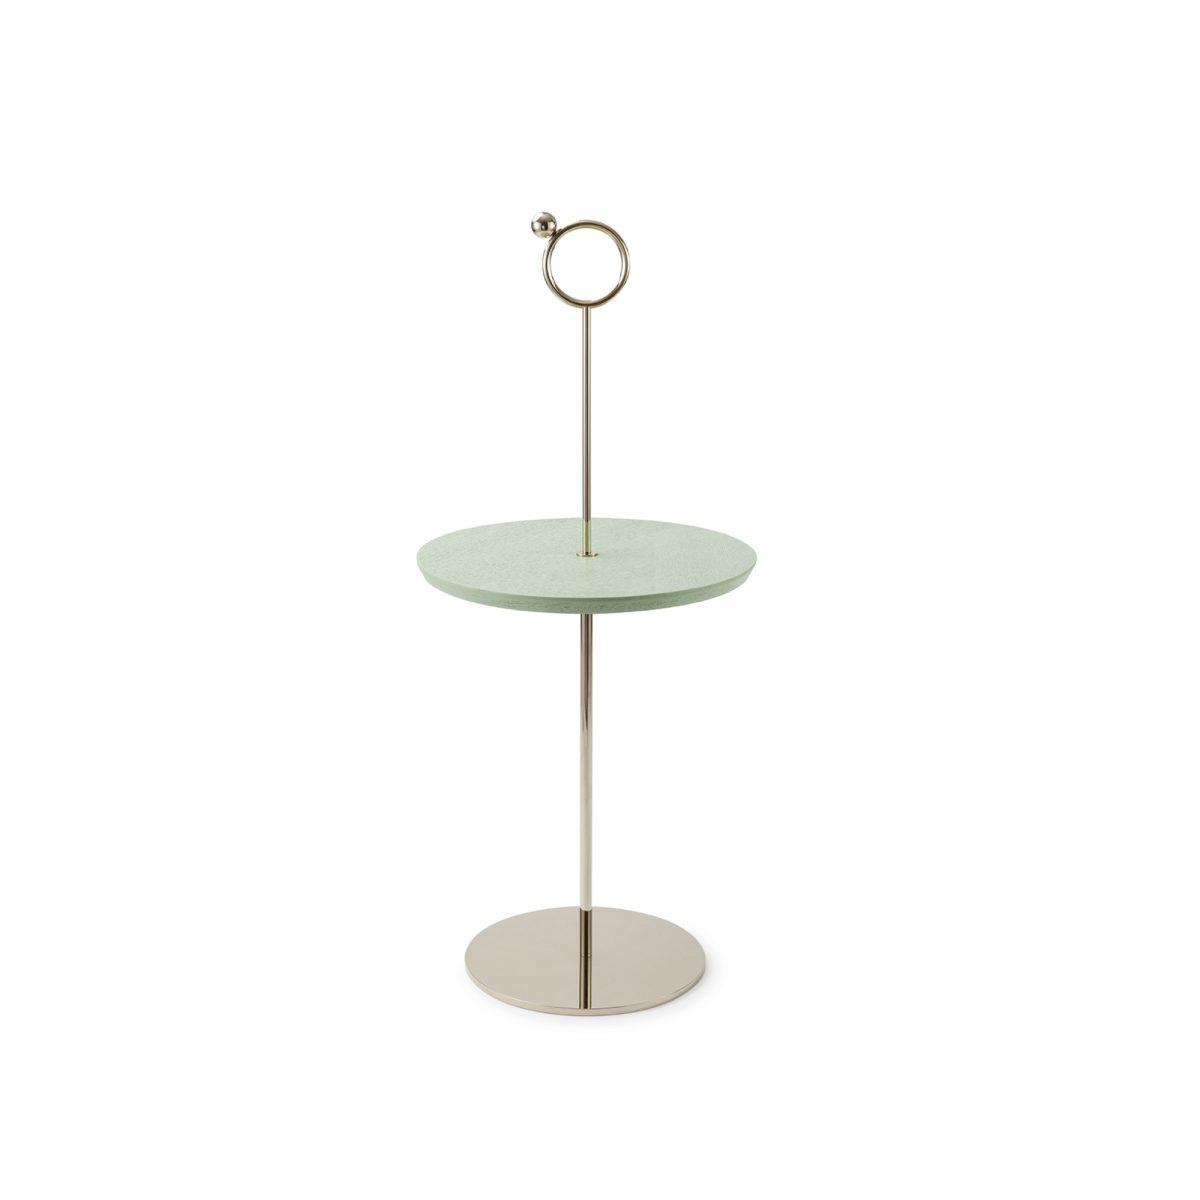 1-off_the_moon_02_tables_side_tables_green